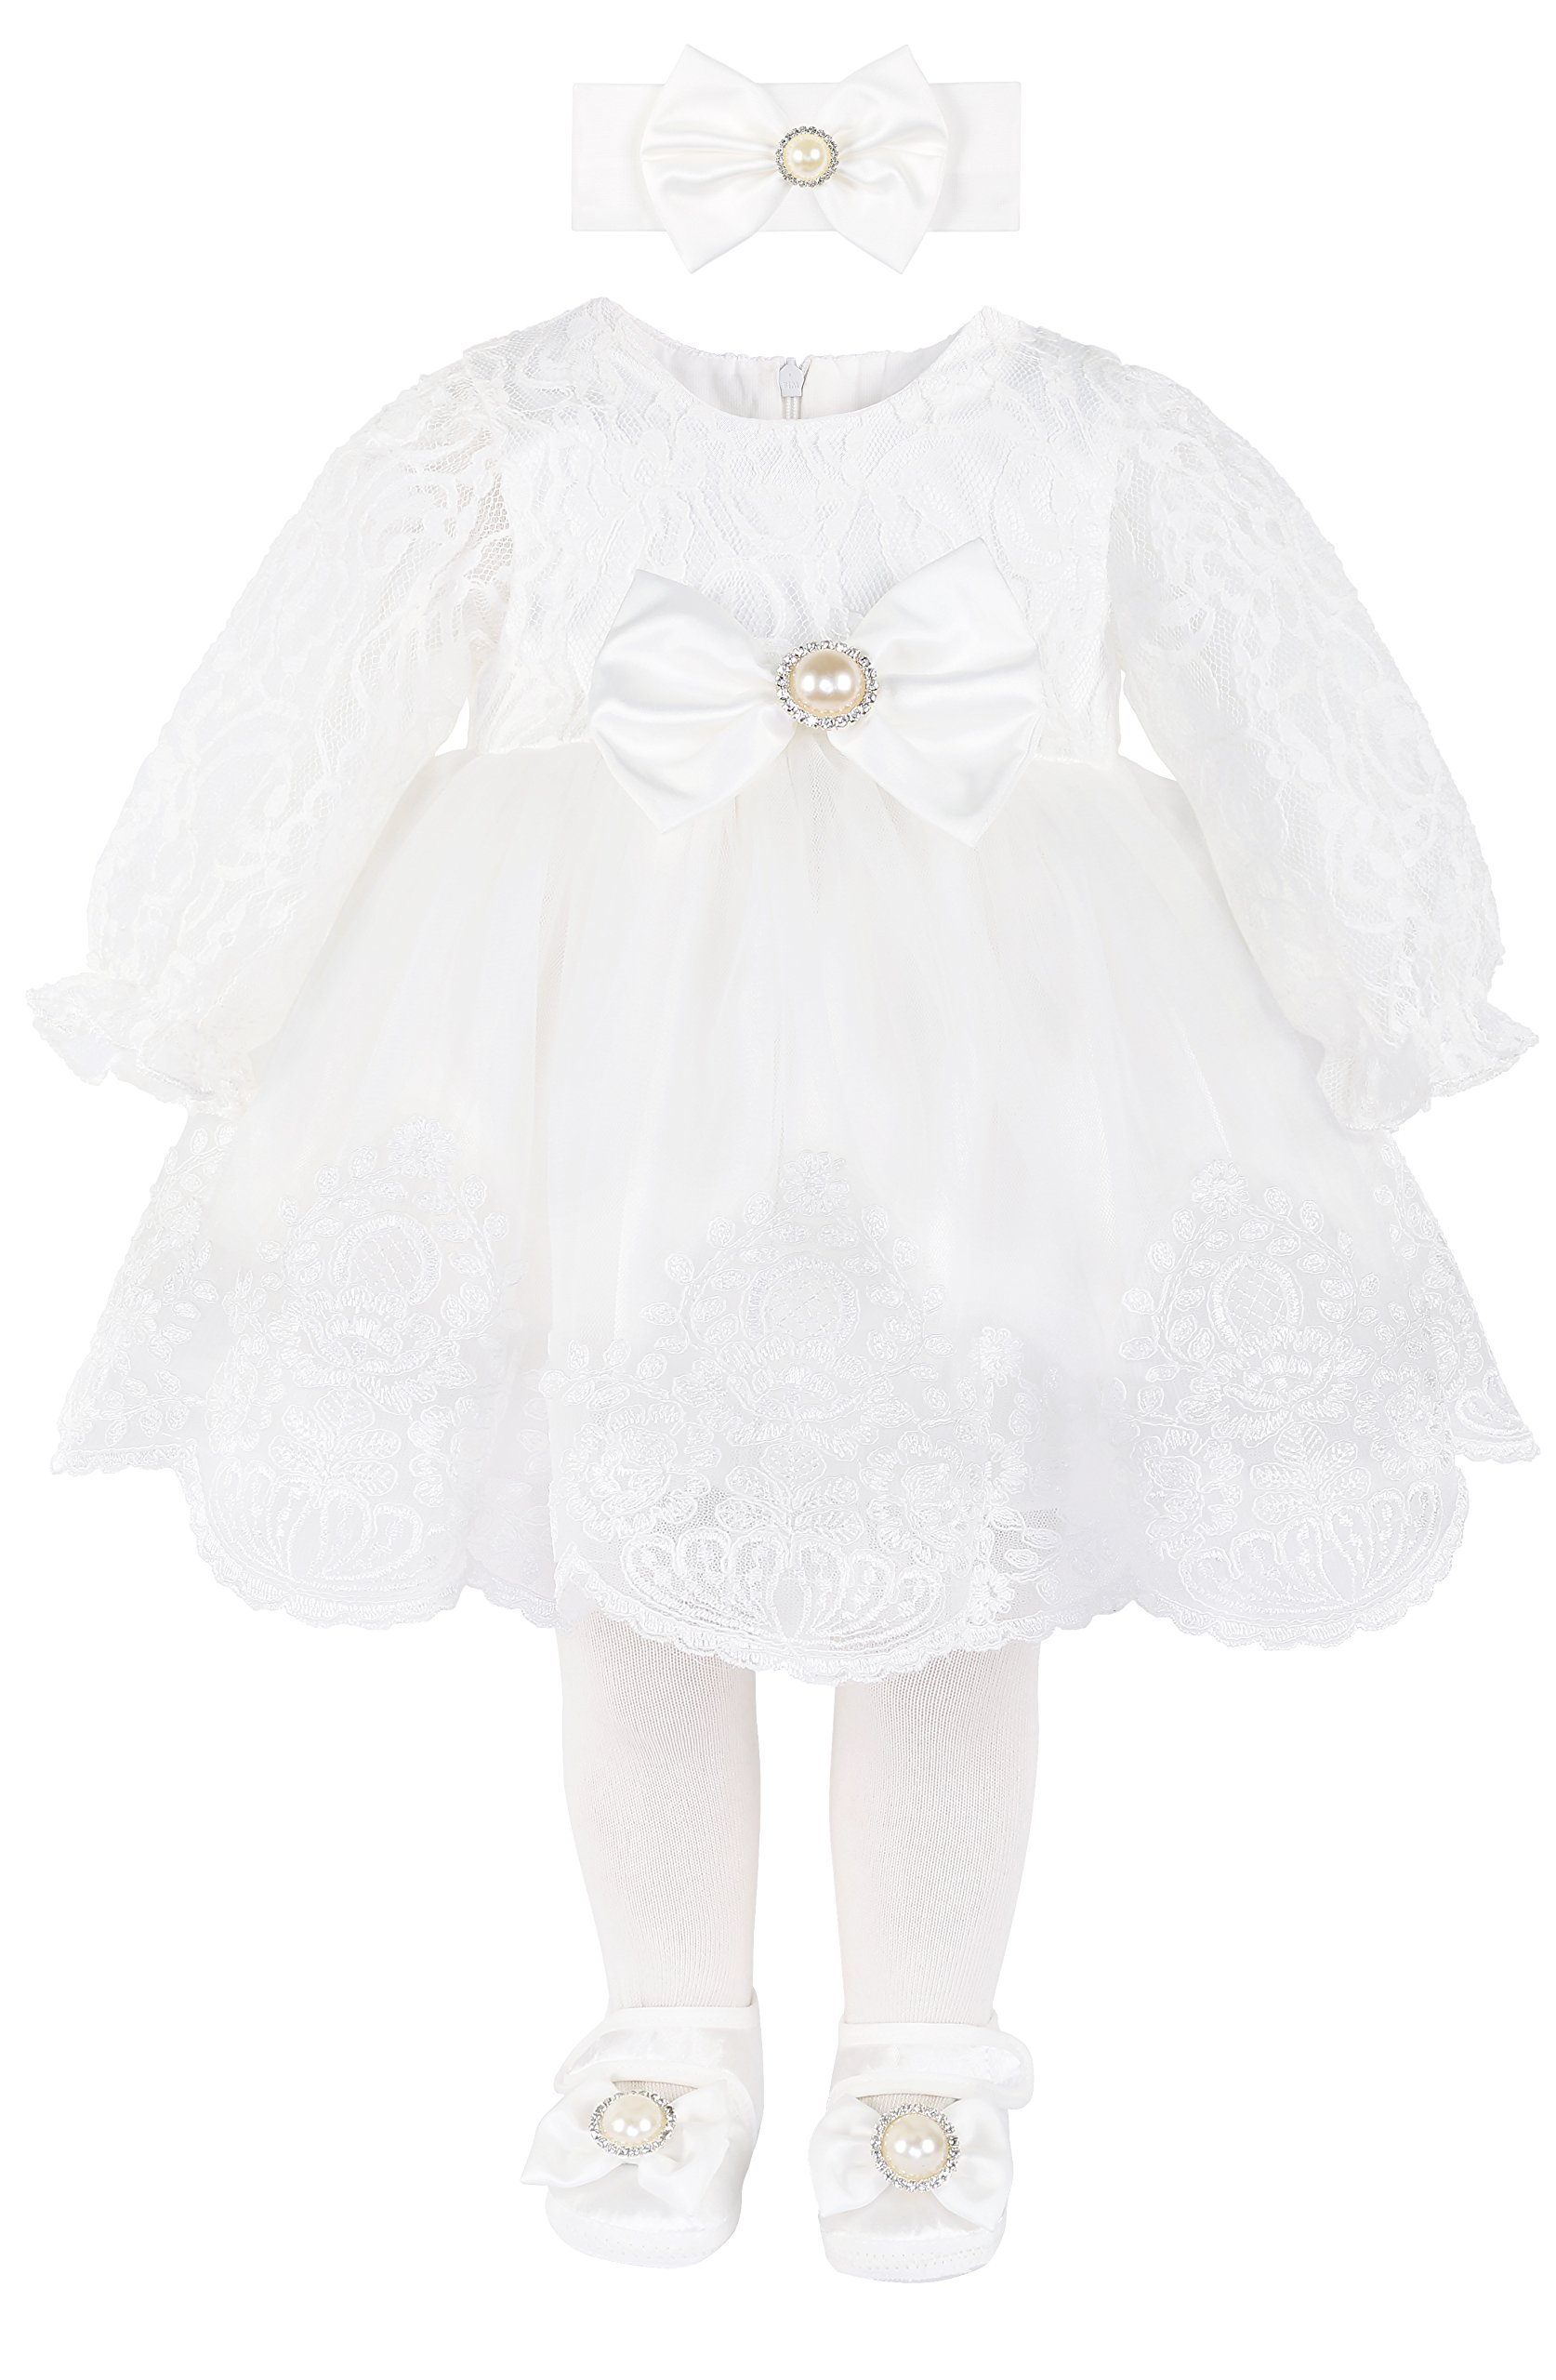 Taffy Baby Girl Newborn Christening Baptism Lace White Dress Gown 6 Piece Deluxe Set 3-6 Months by T.F. Taffy